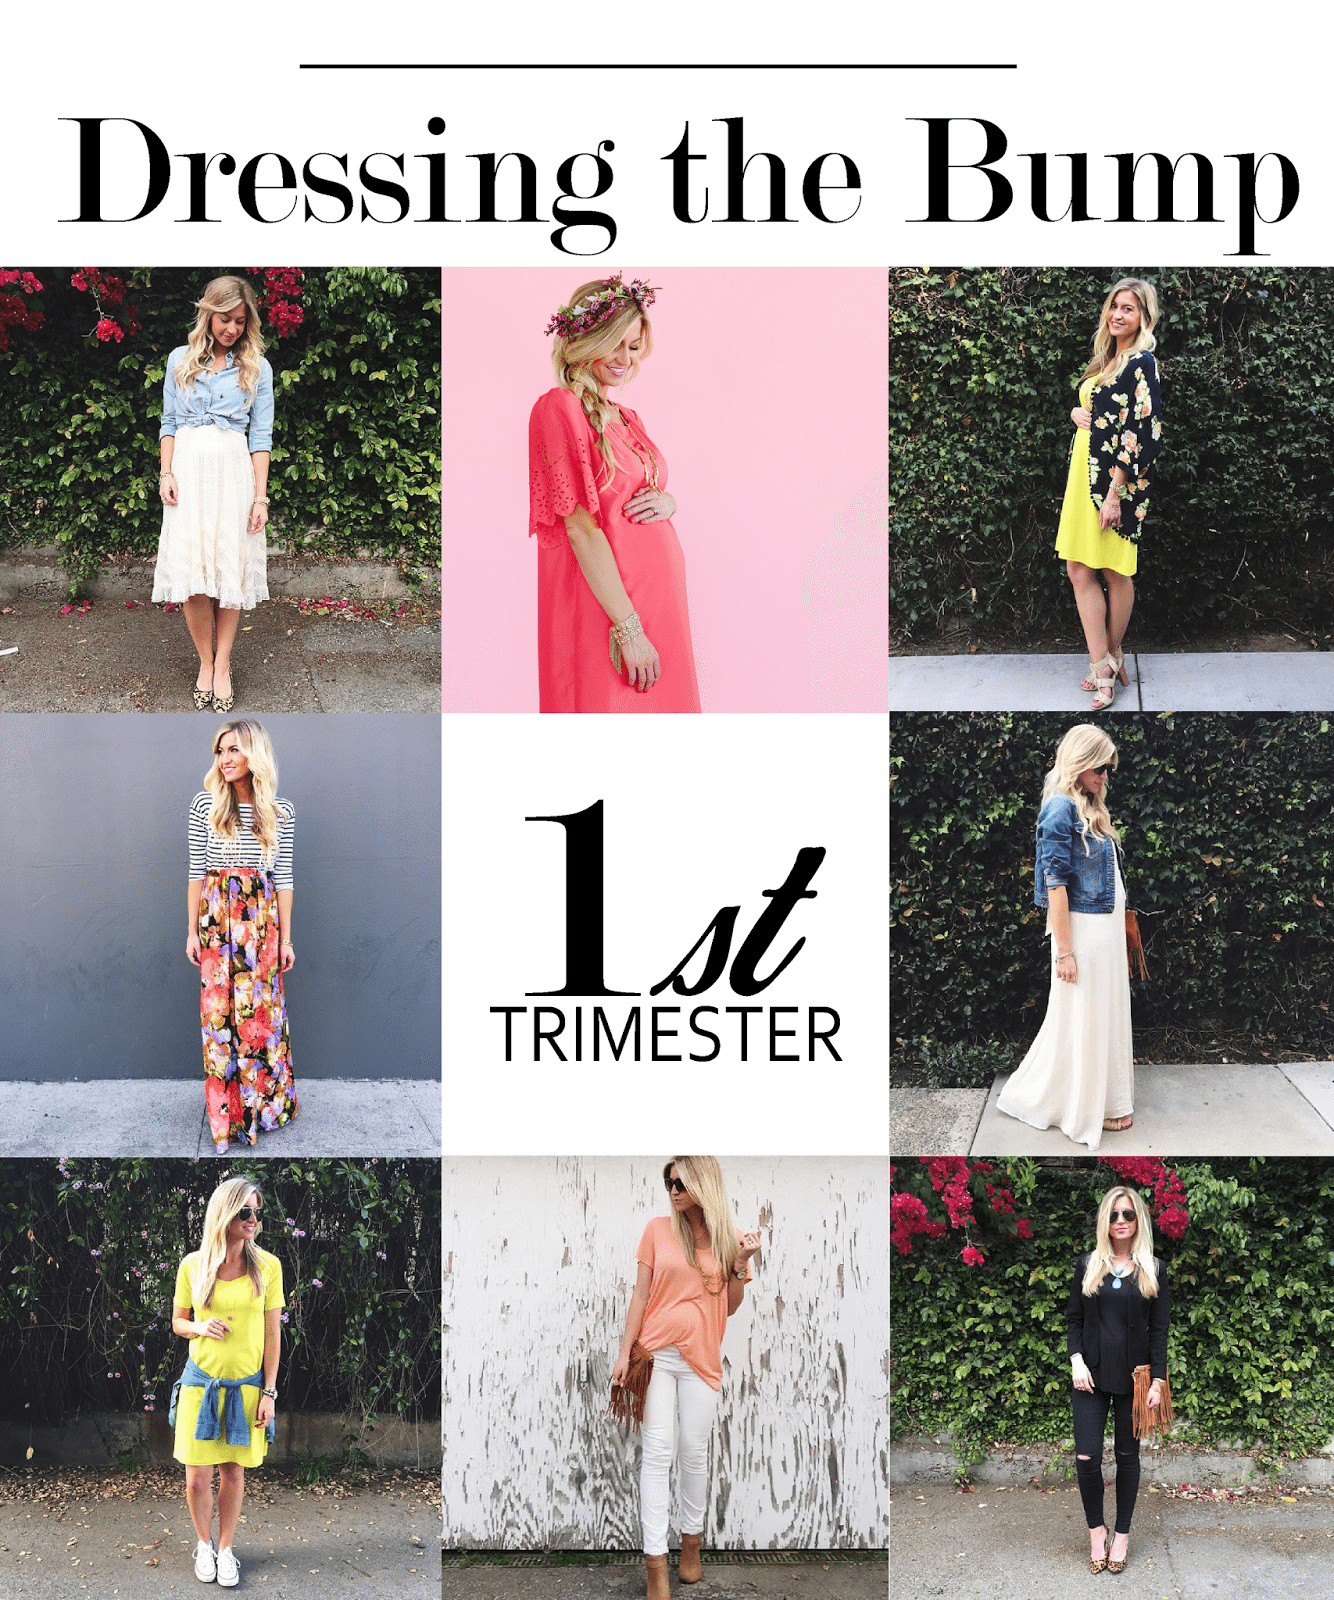 DRESSING THE BUMP SERIES: WHAT TO WEAR DURING YOUR FIRST TRIMESTER